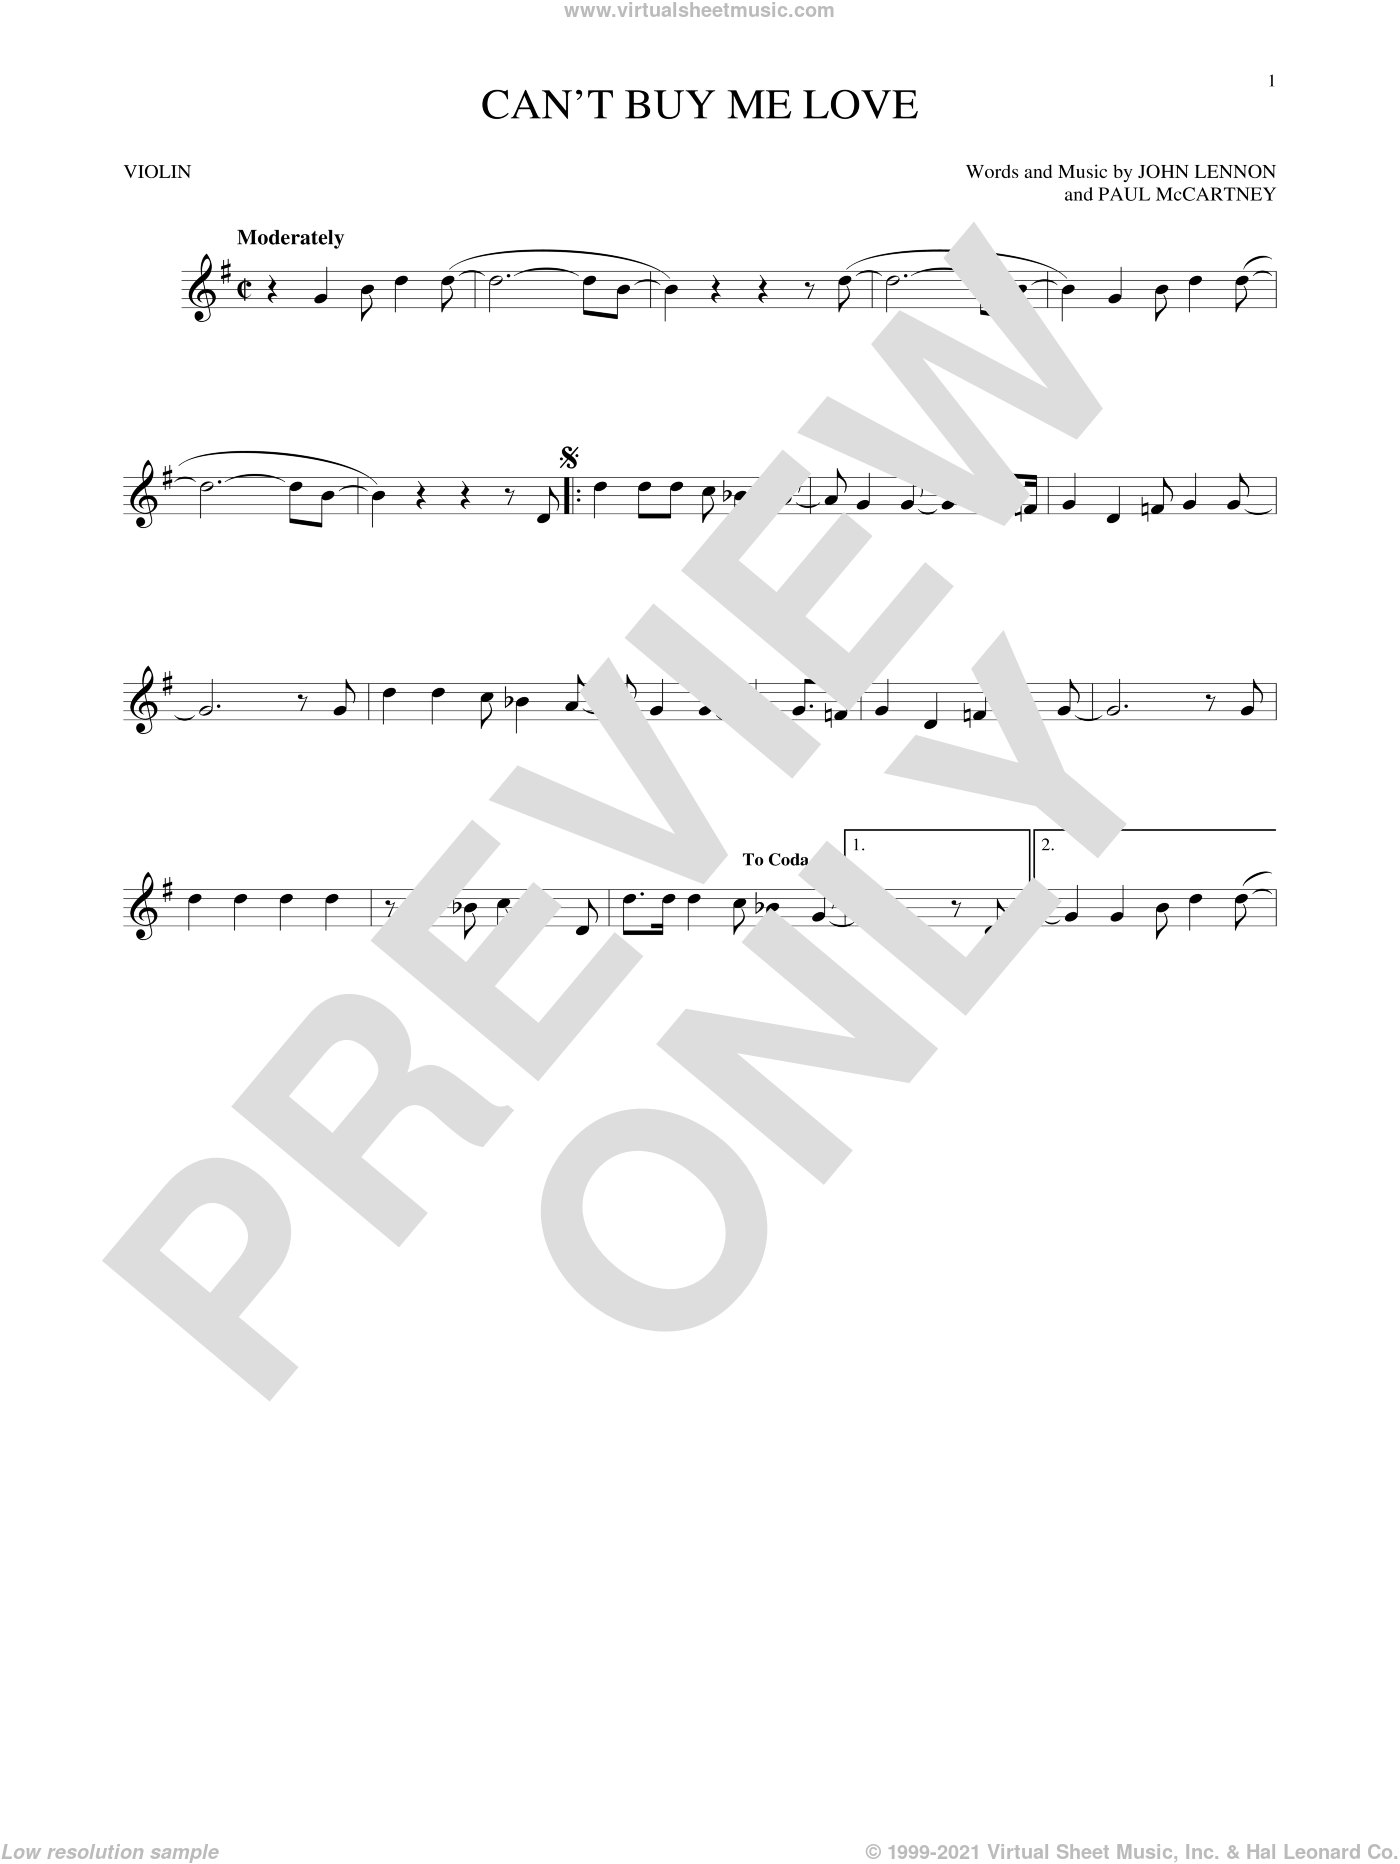 Can't Buy Me Love sheet music for violin solo by Paul McCartney, The Beatles and John Lennon. Score Image Preview.